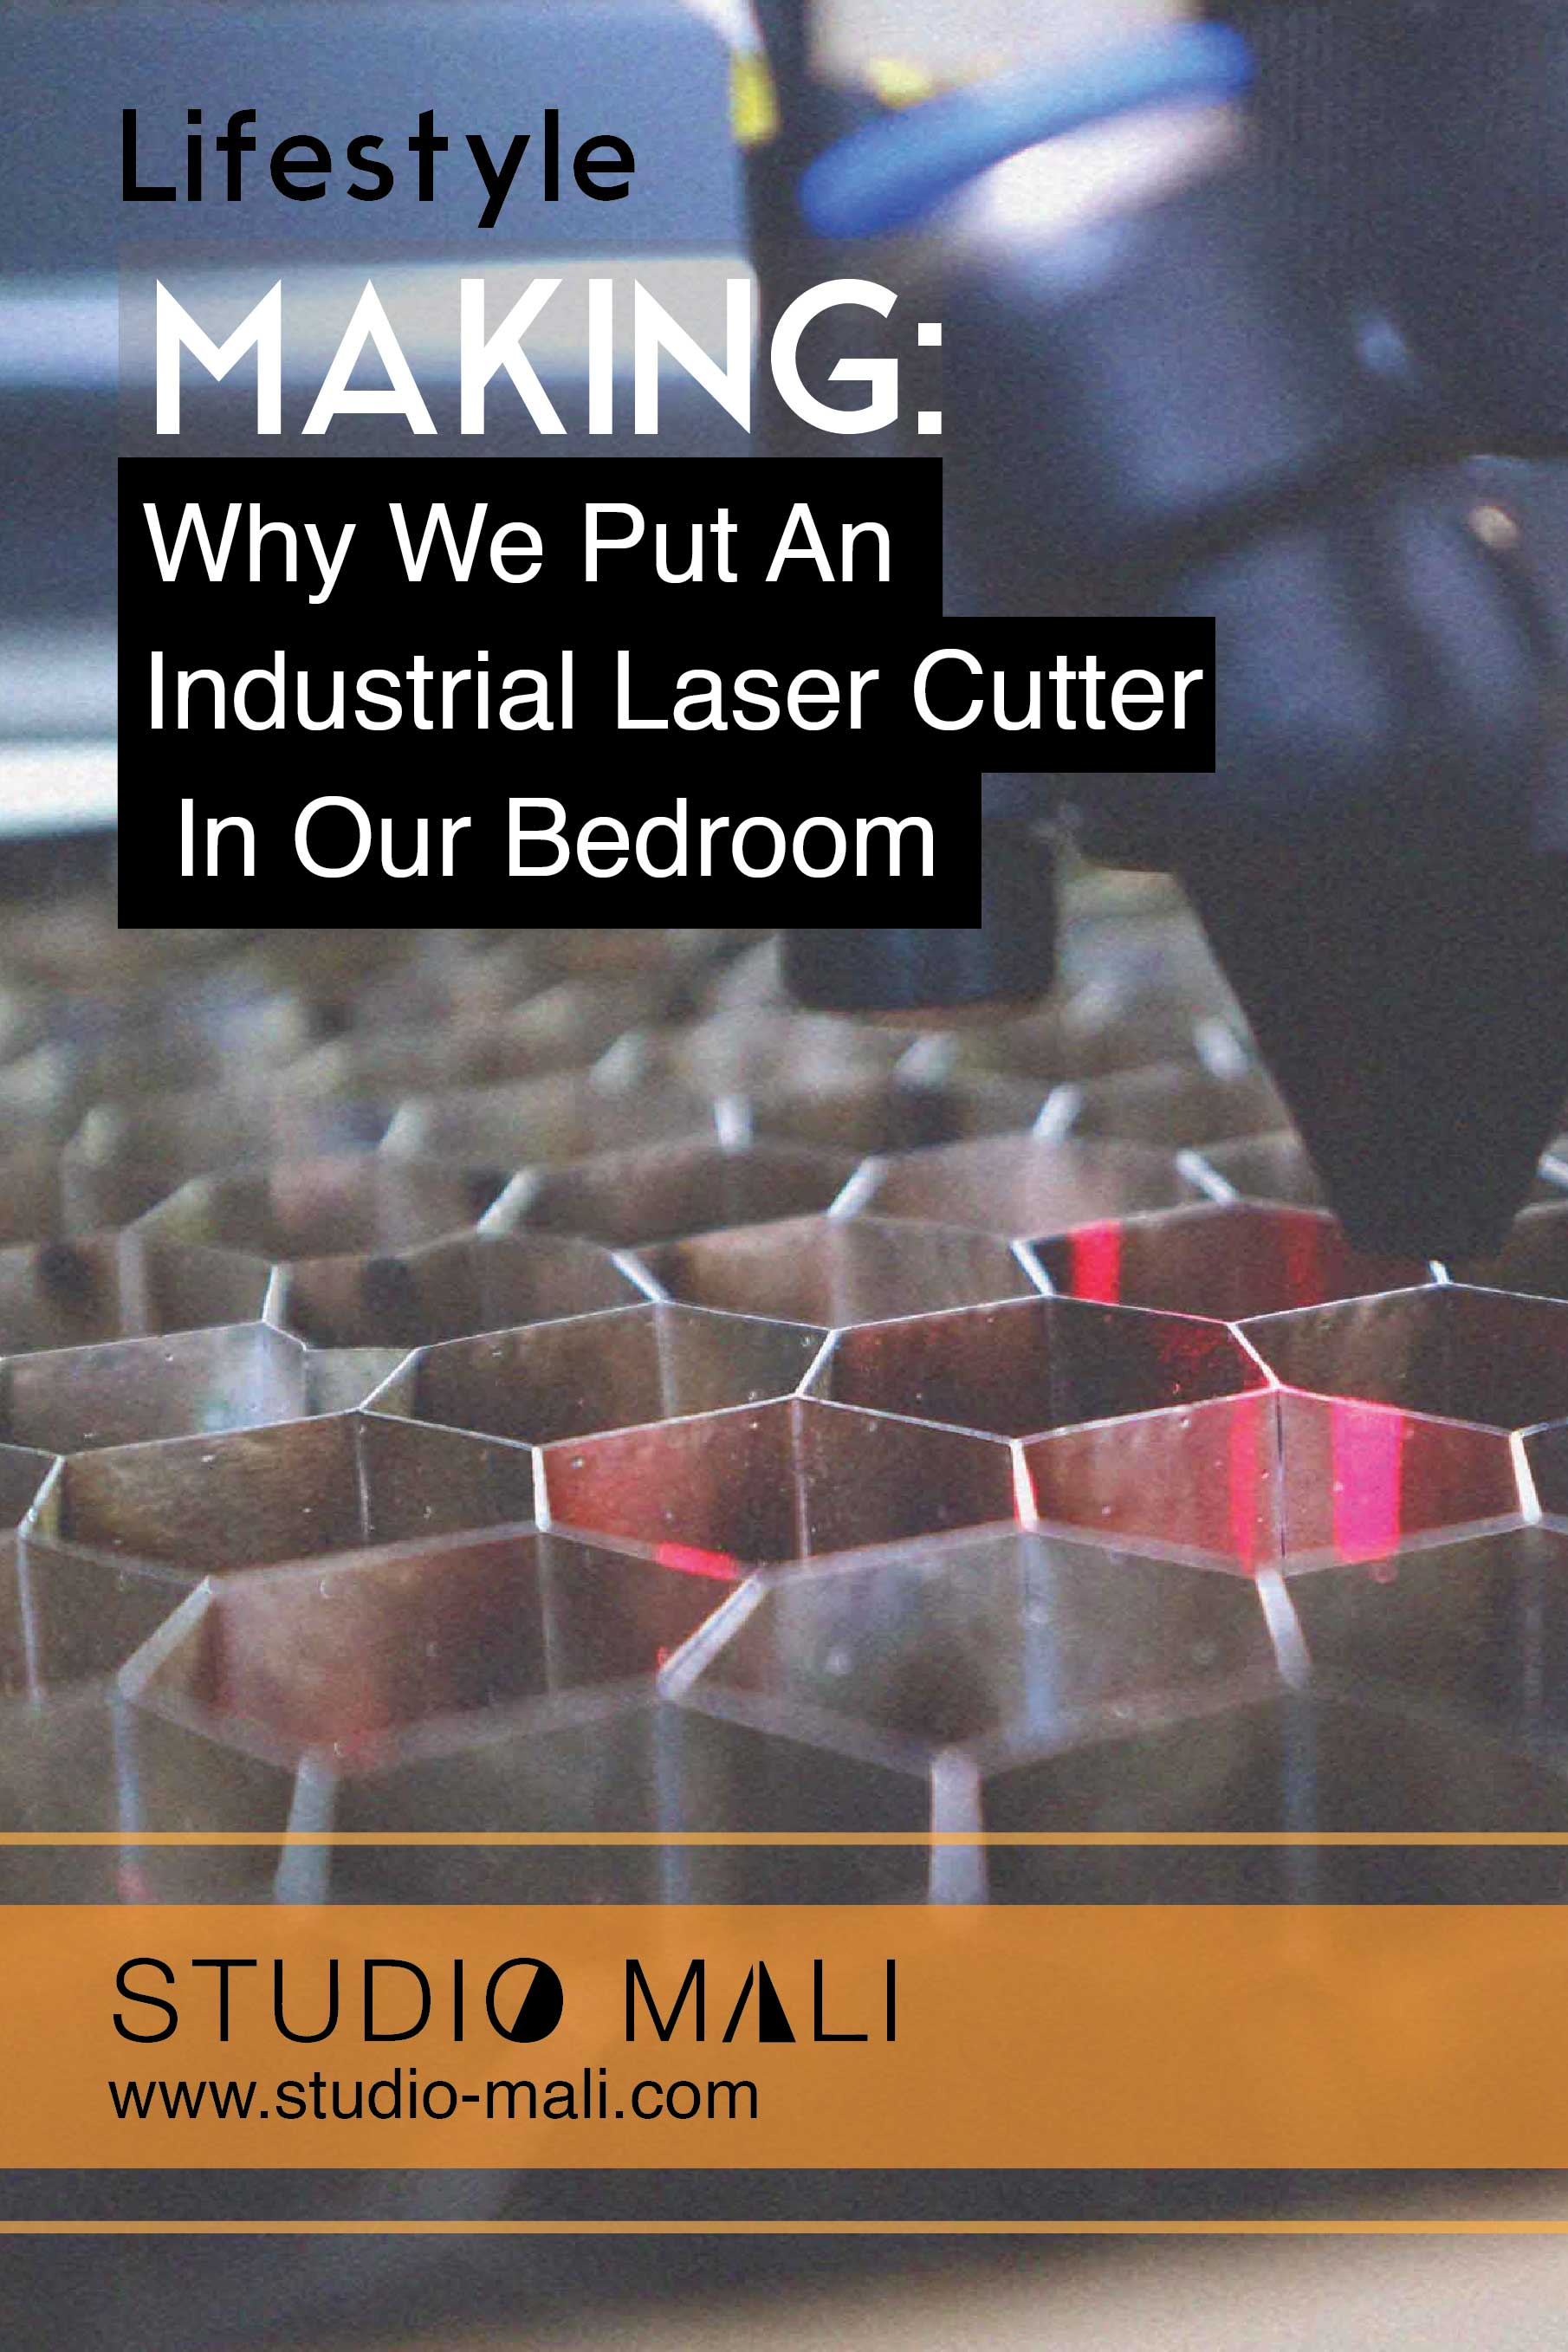 Lifestyle- Why We Put An Industrial Laser Cutter In Our Bedroom, By Studio Mali.jpg